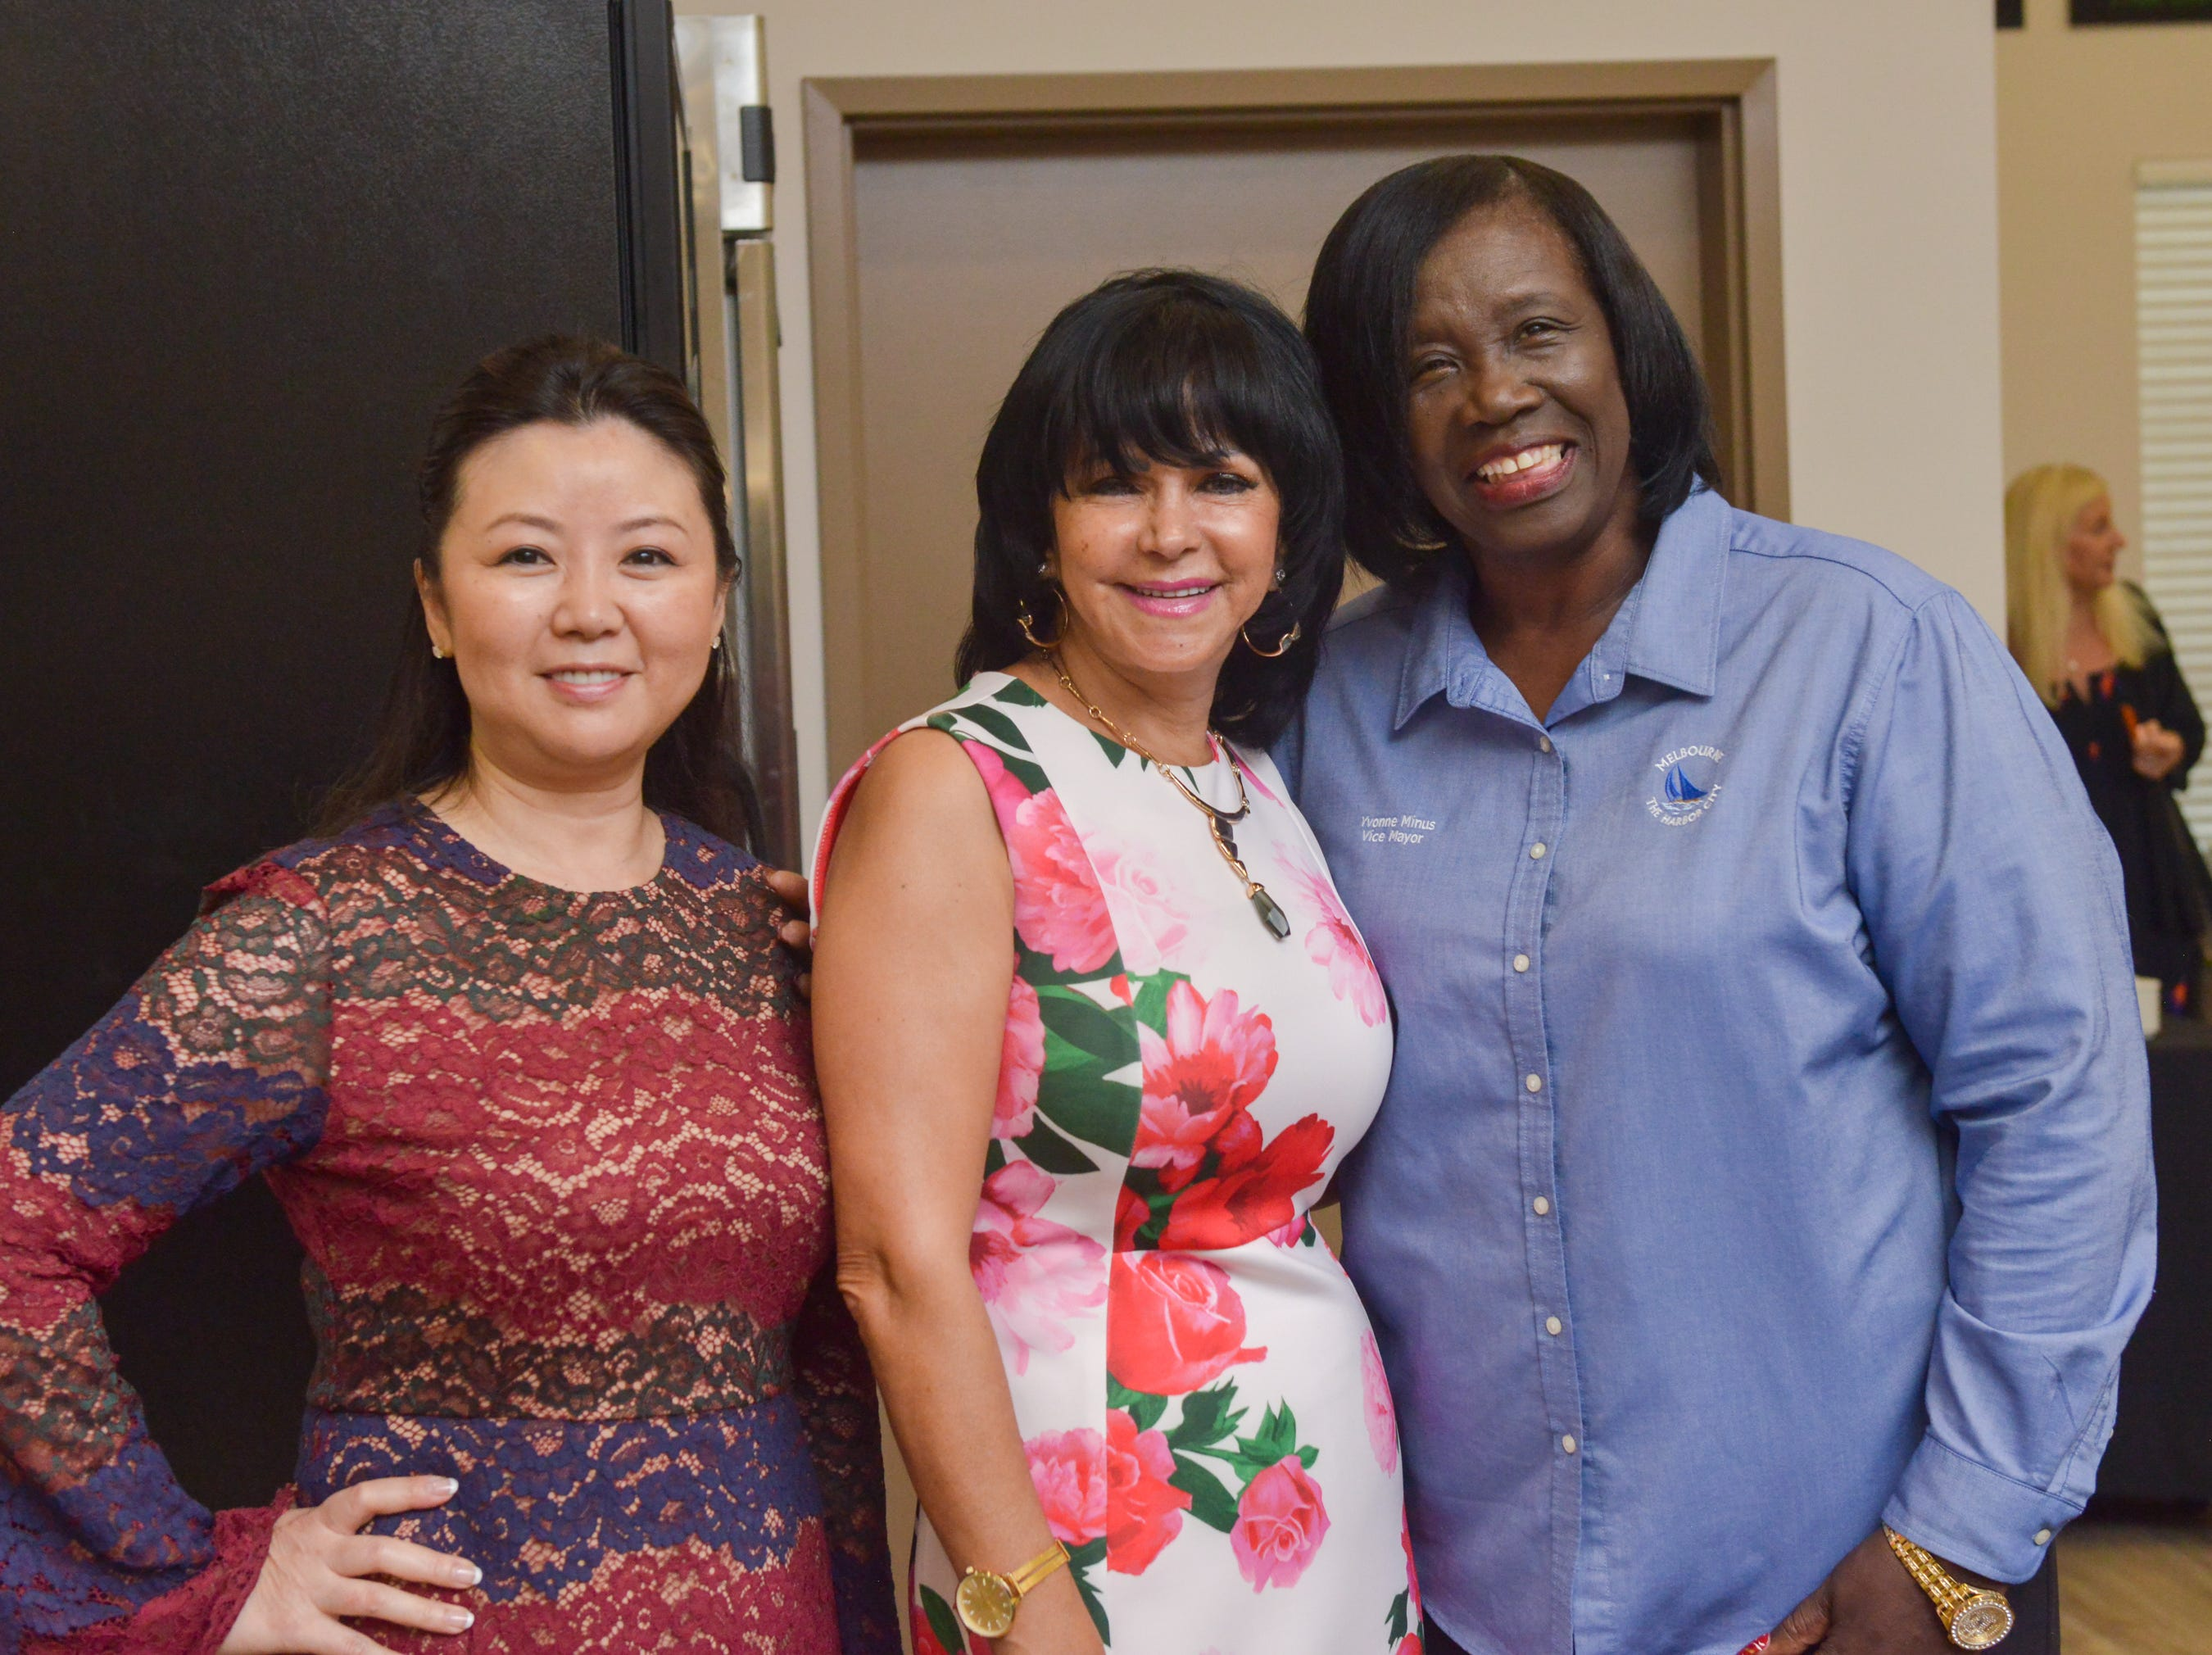 Grace Han, Malak Hammad, Yvonne Minus during the Women of Excellence Gathering at Promise in Brevard sponsored by the Melbourne Regional Chamber.